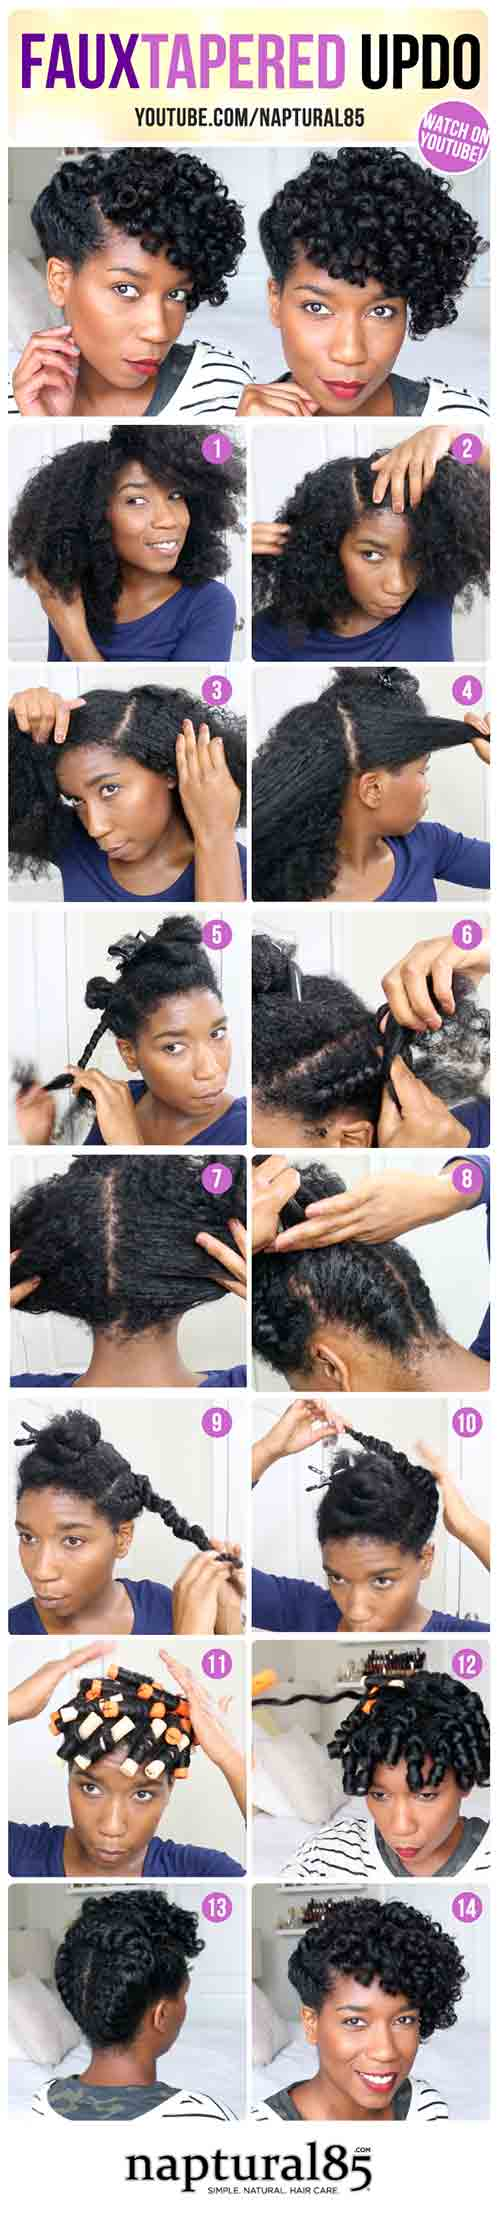 6. Faux Tapered Updo